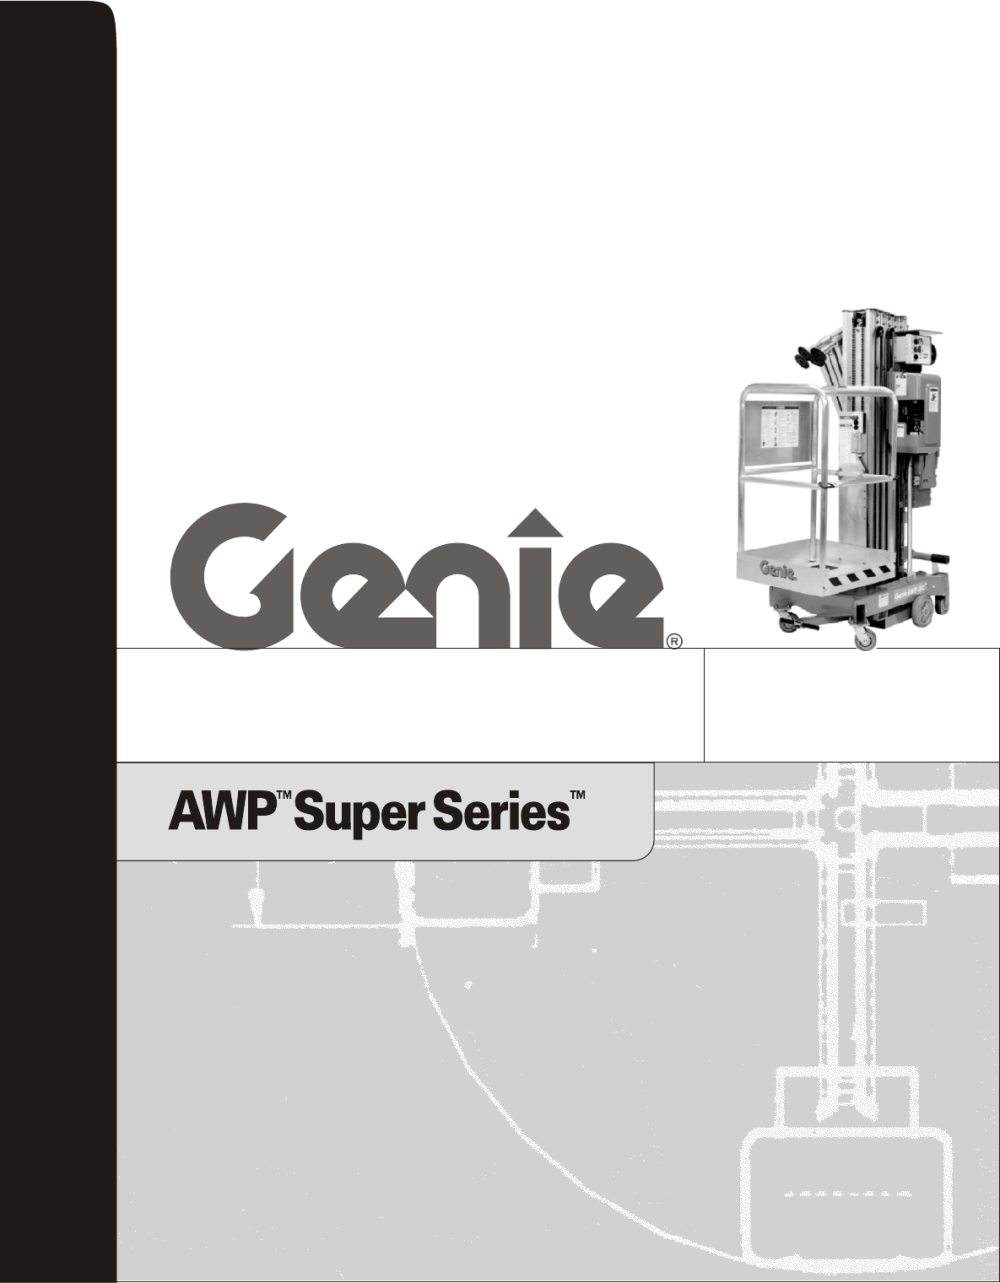 medium resolution of awp 25 genie lift wiring diagram